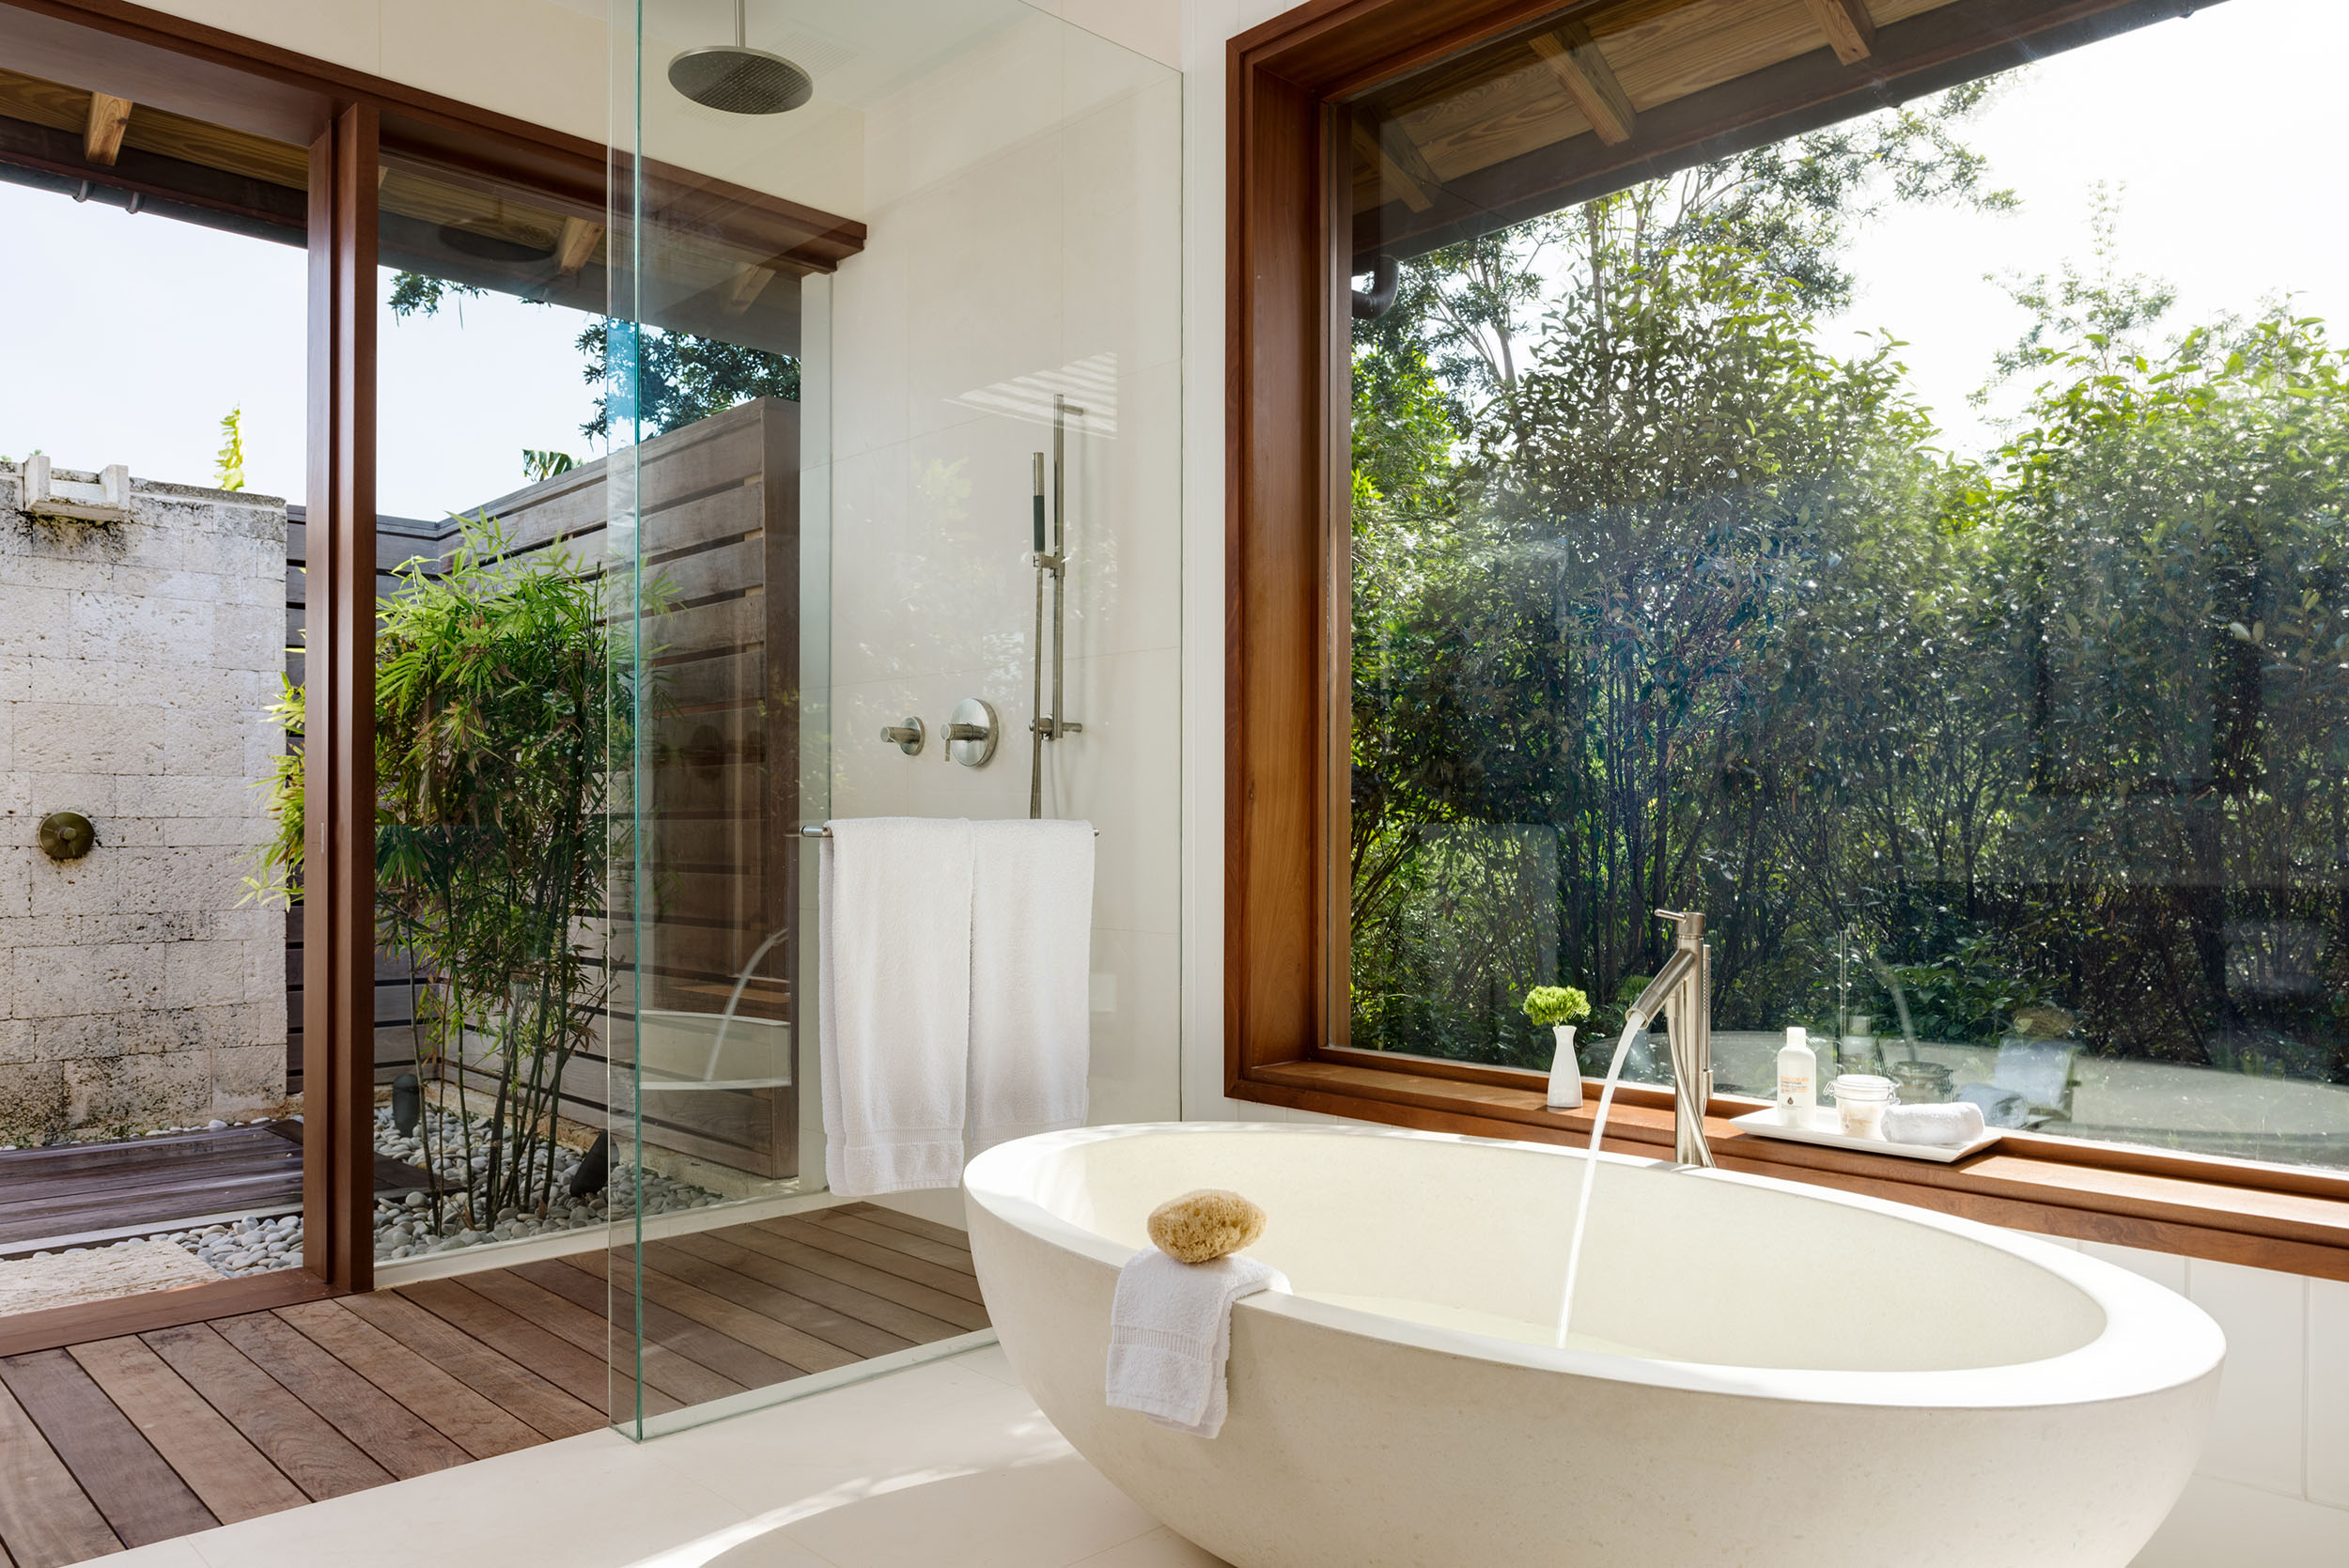 Serenity - view of one of the bathrooms with outdoor shower area beyond